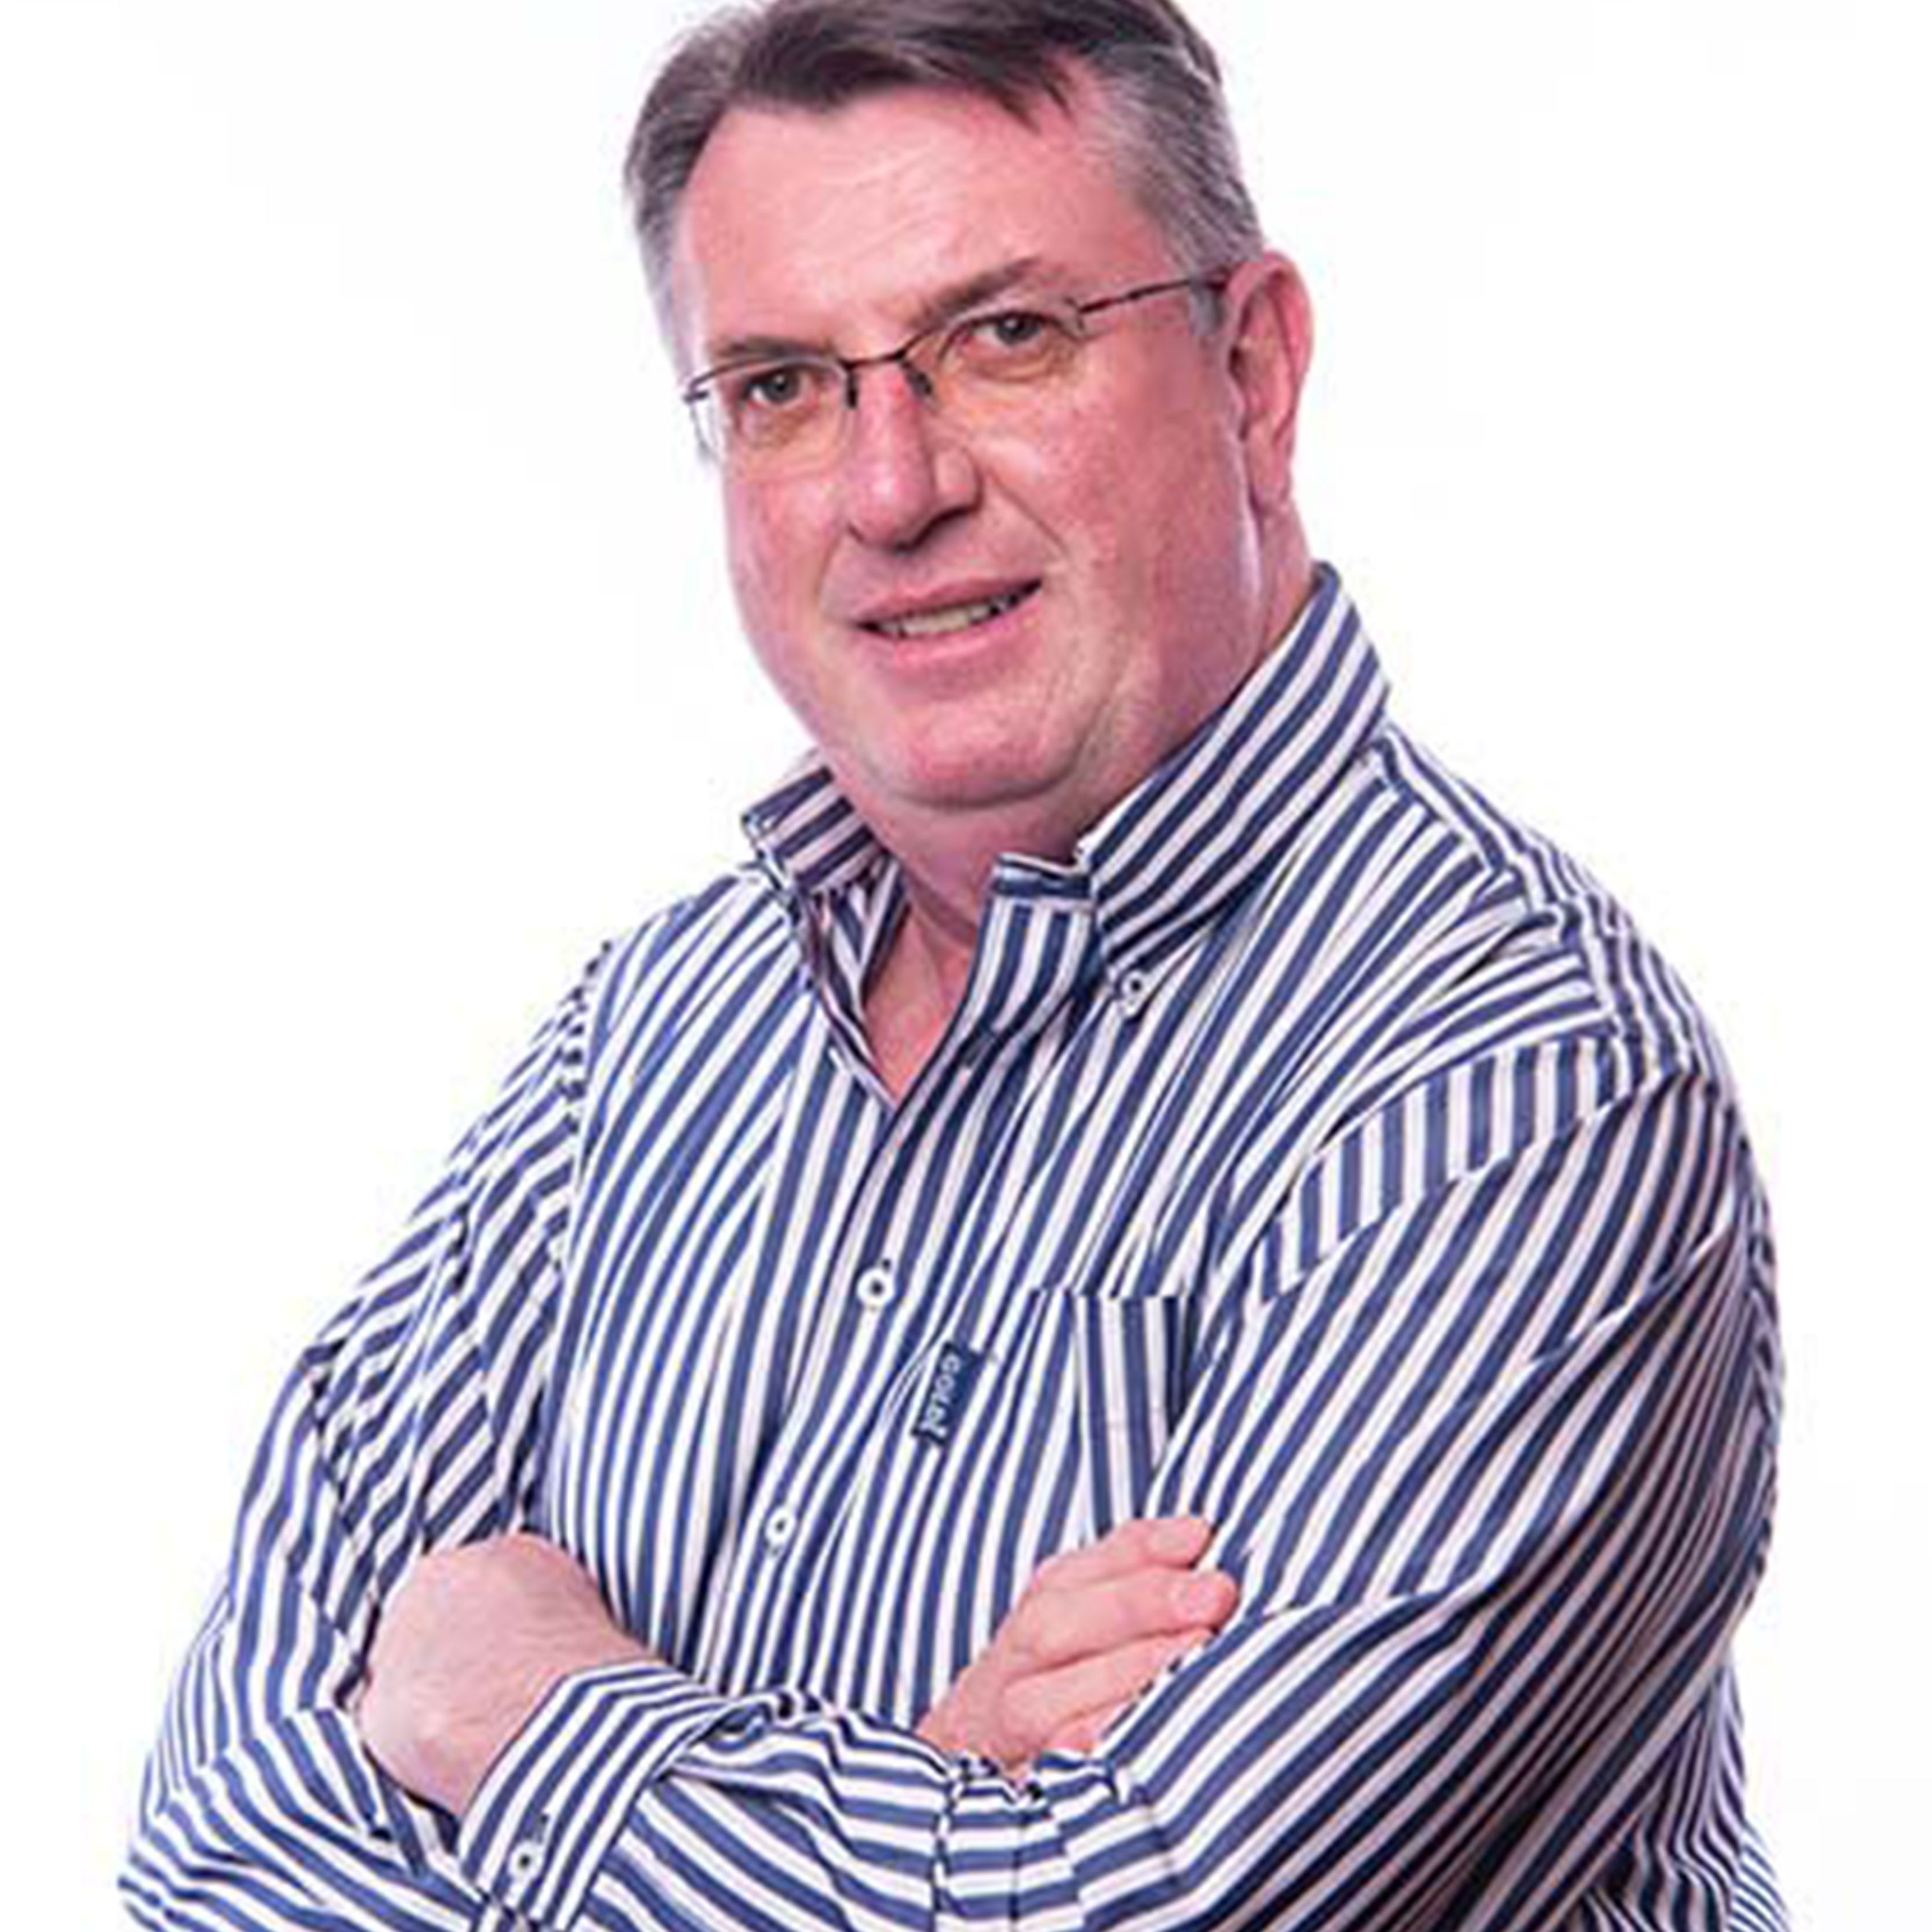 Profile photo of Colin Smith, Marketing Executive at Astral Foods